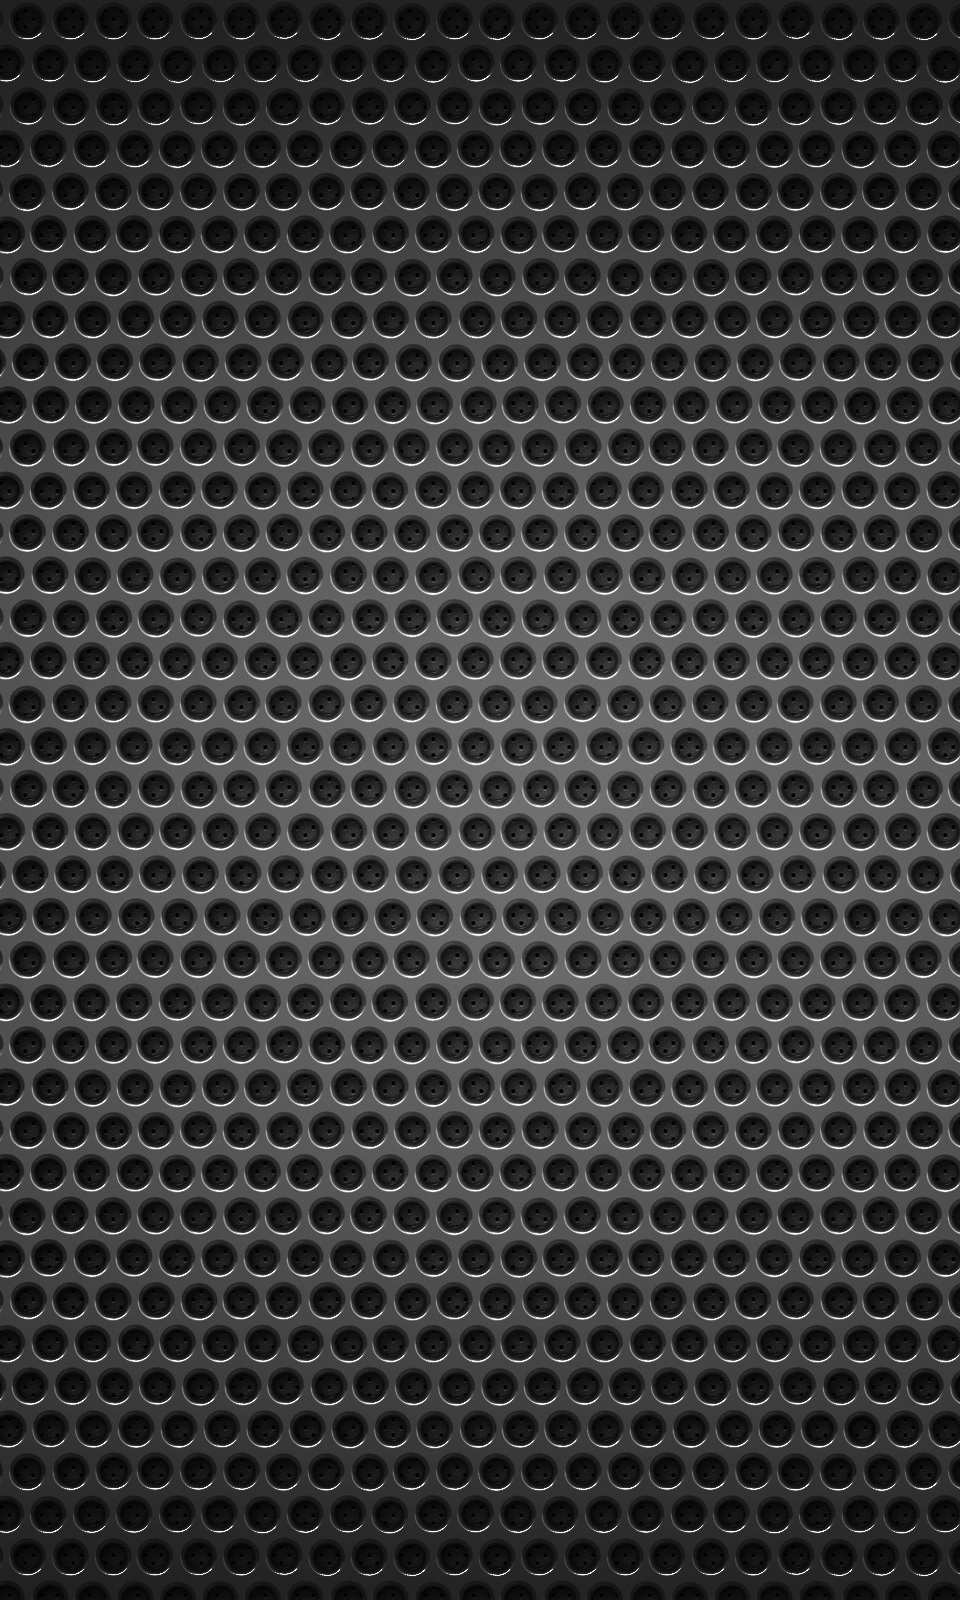 18475 free download Gray wallpapers for phone, Background Gray images and screensavers for mobile